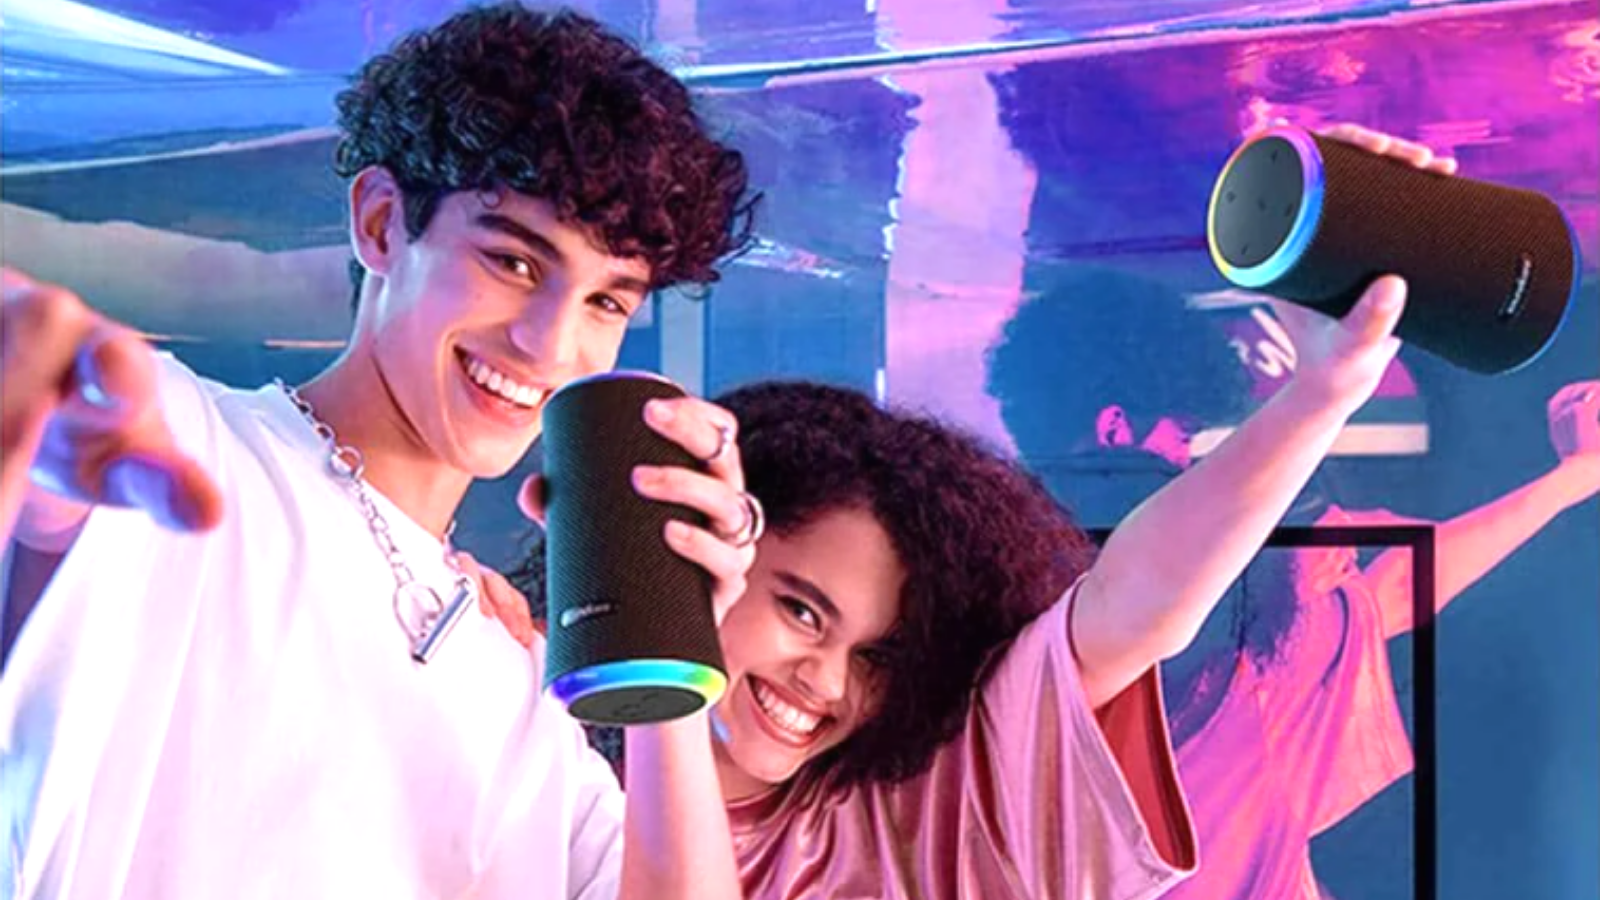 two teens partying with their Anker Soundcore Flare 2 Bluetooth Speaker